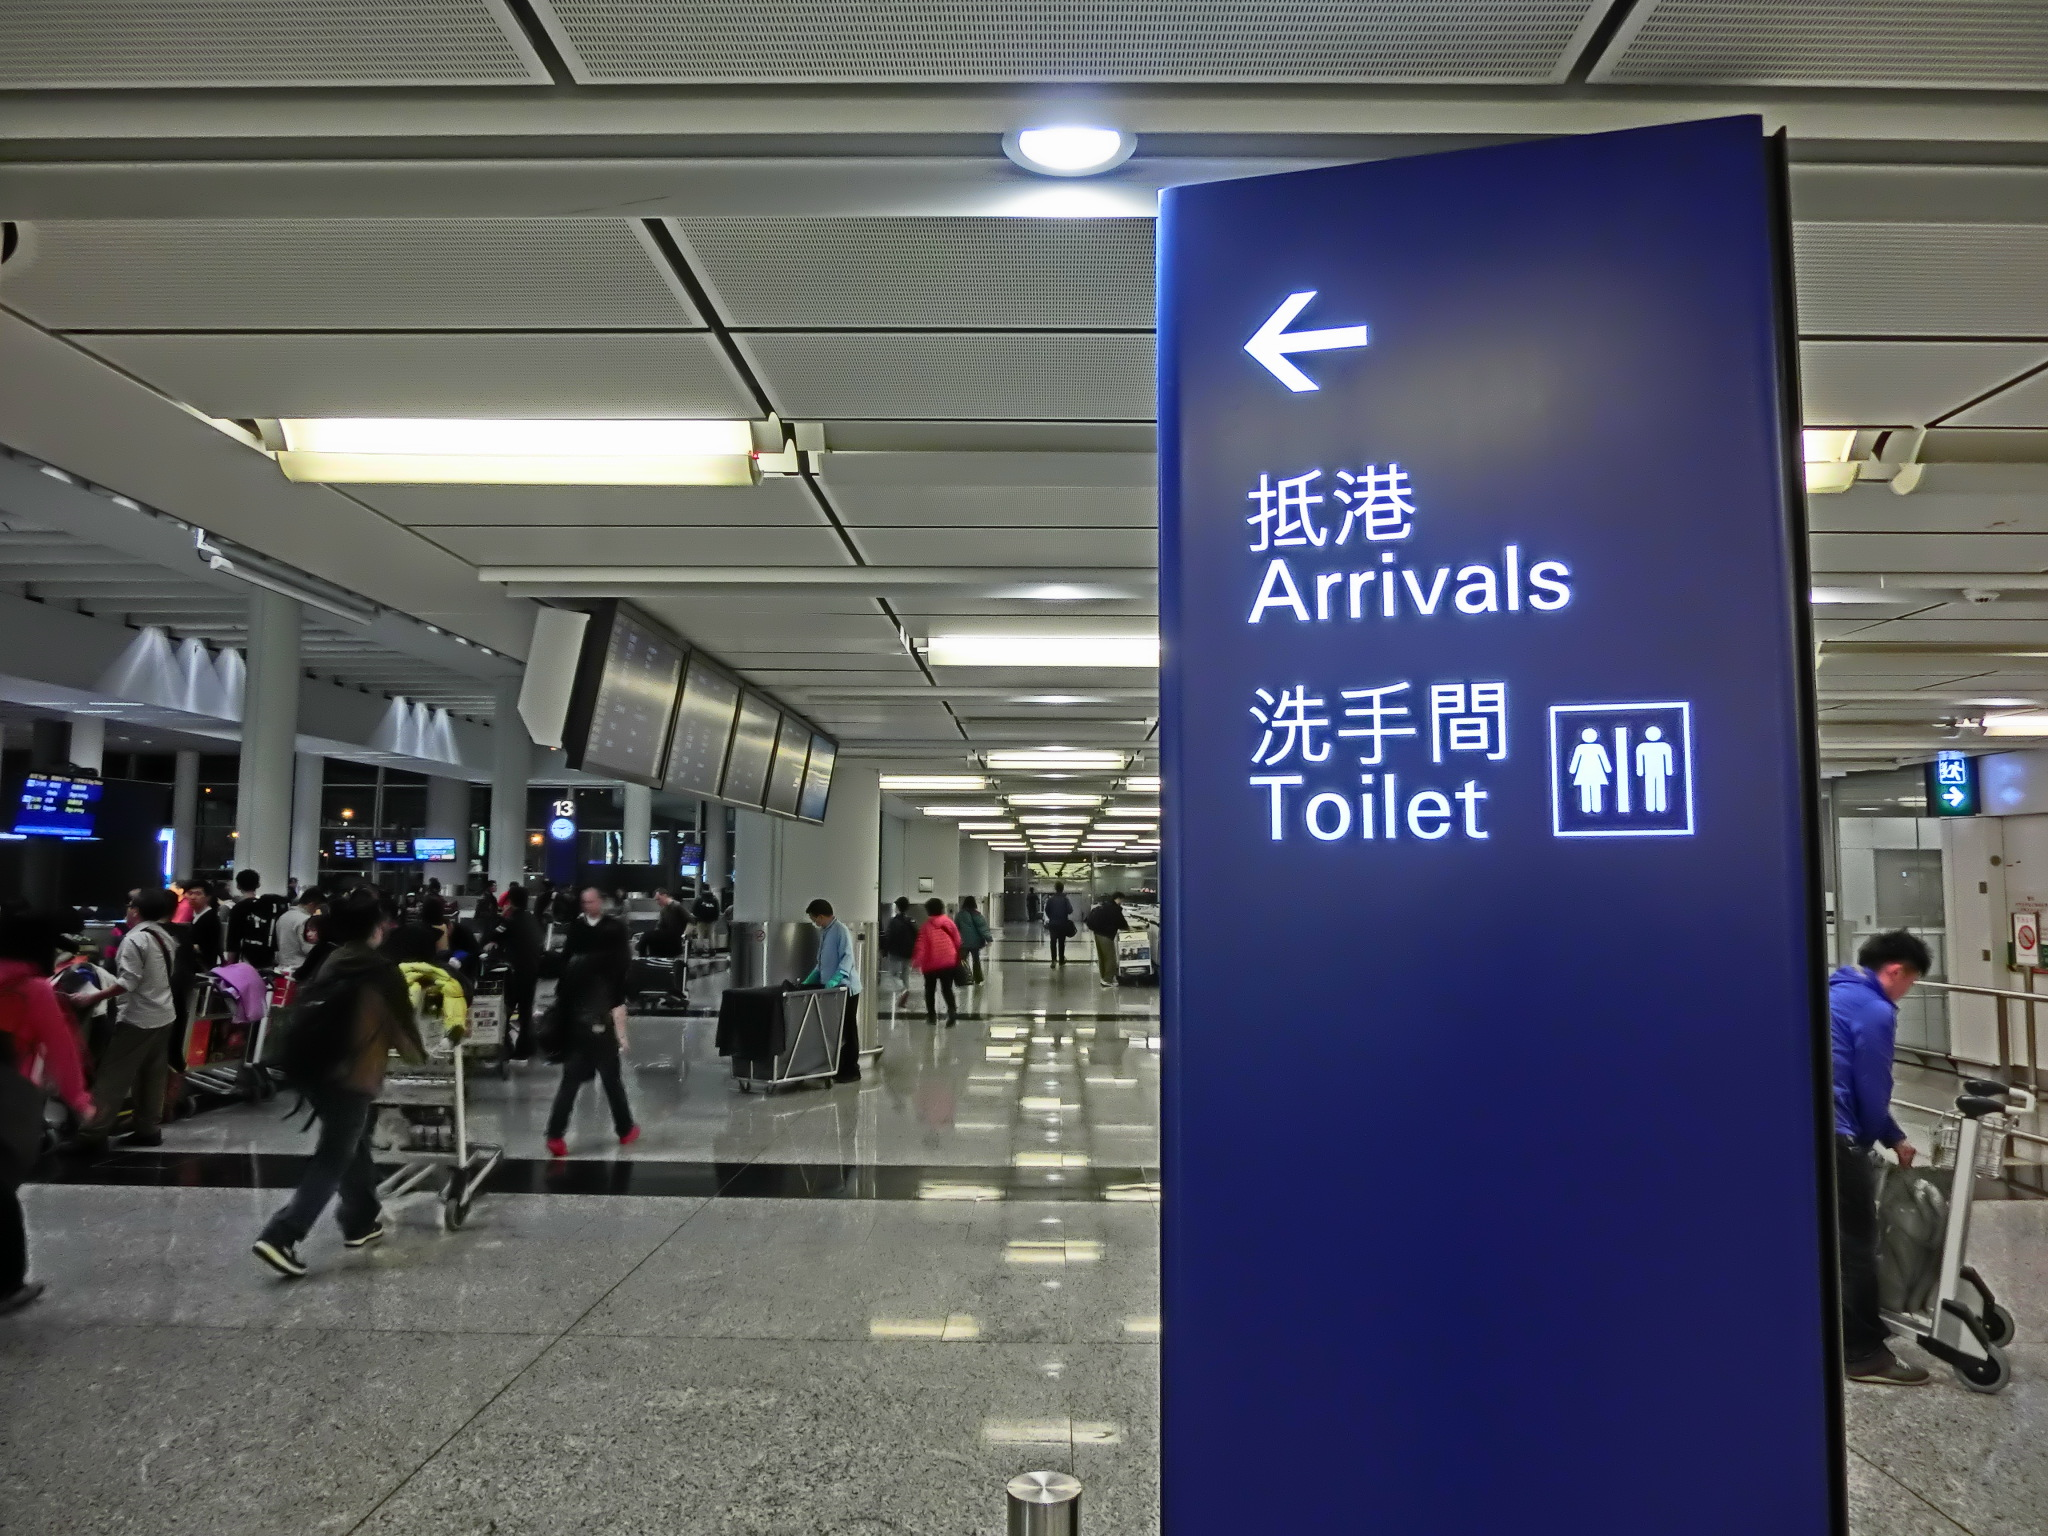 Related Keywords & Suggestions for hong kong airport arrivals